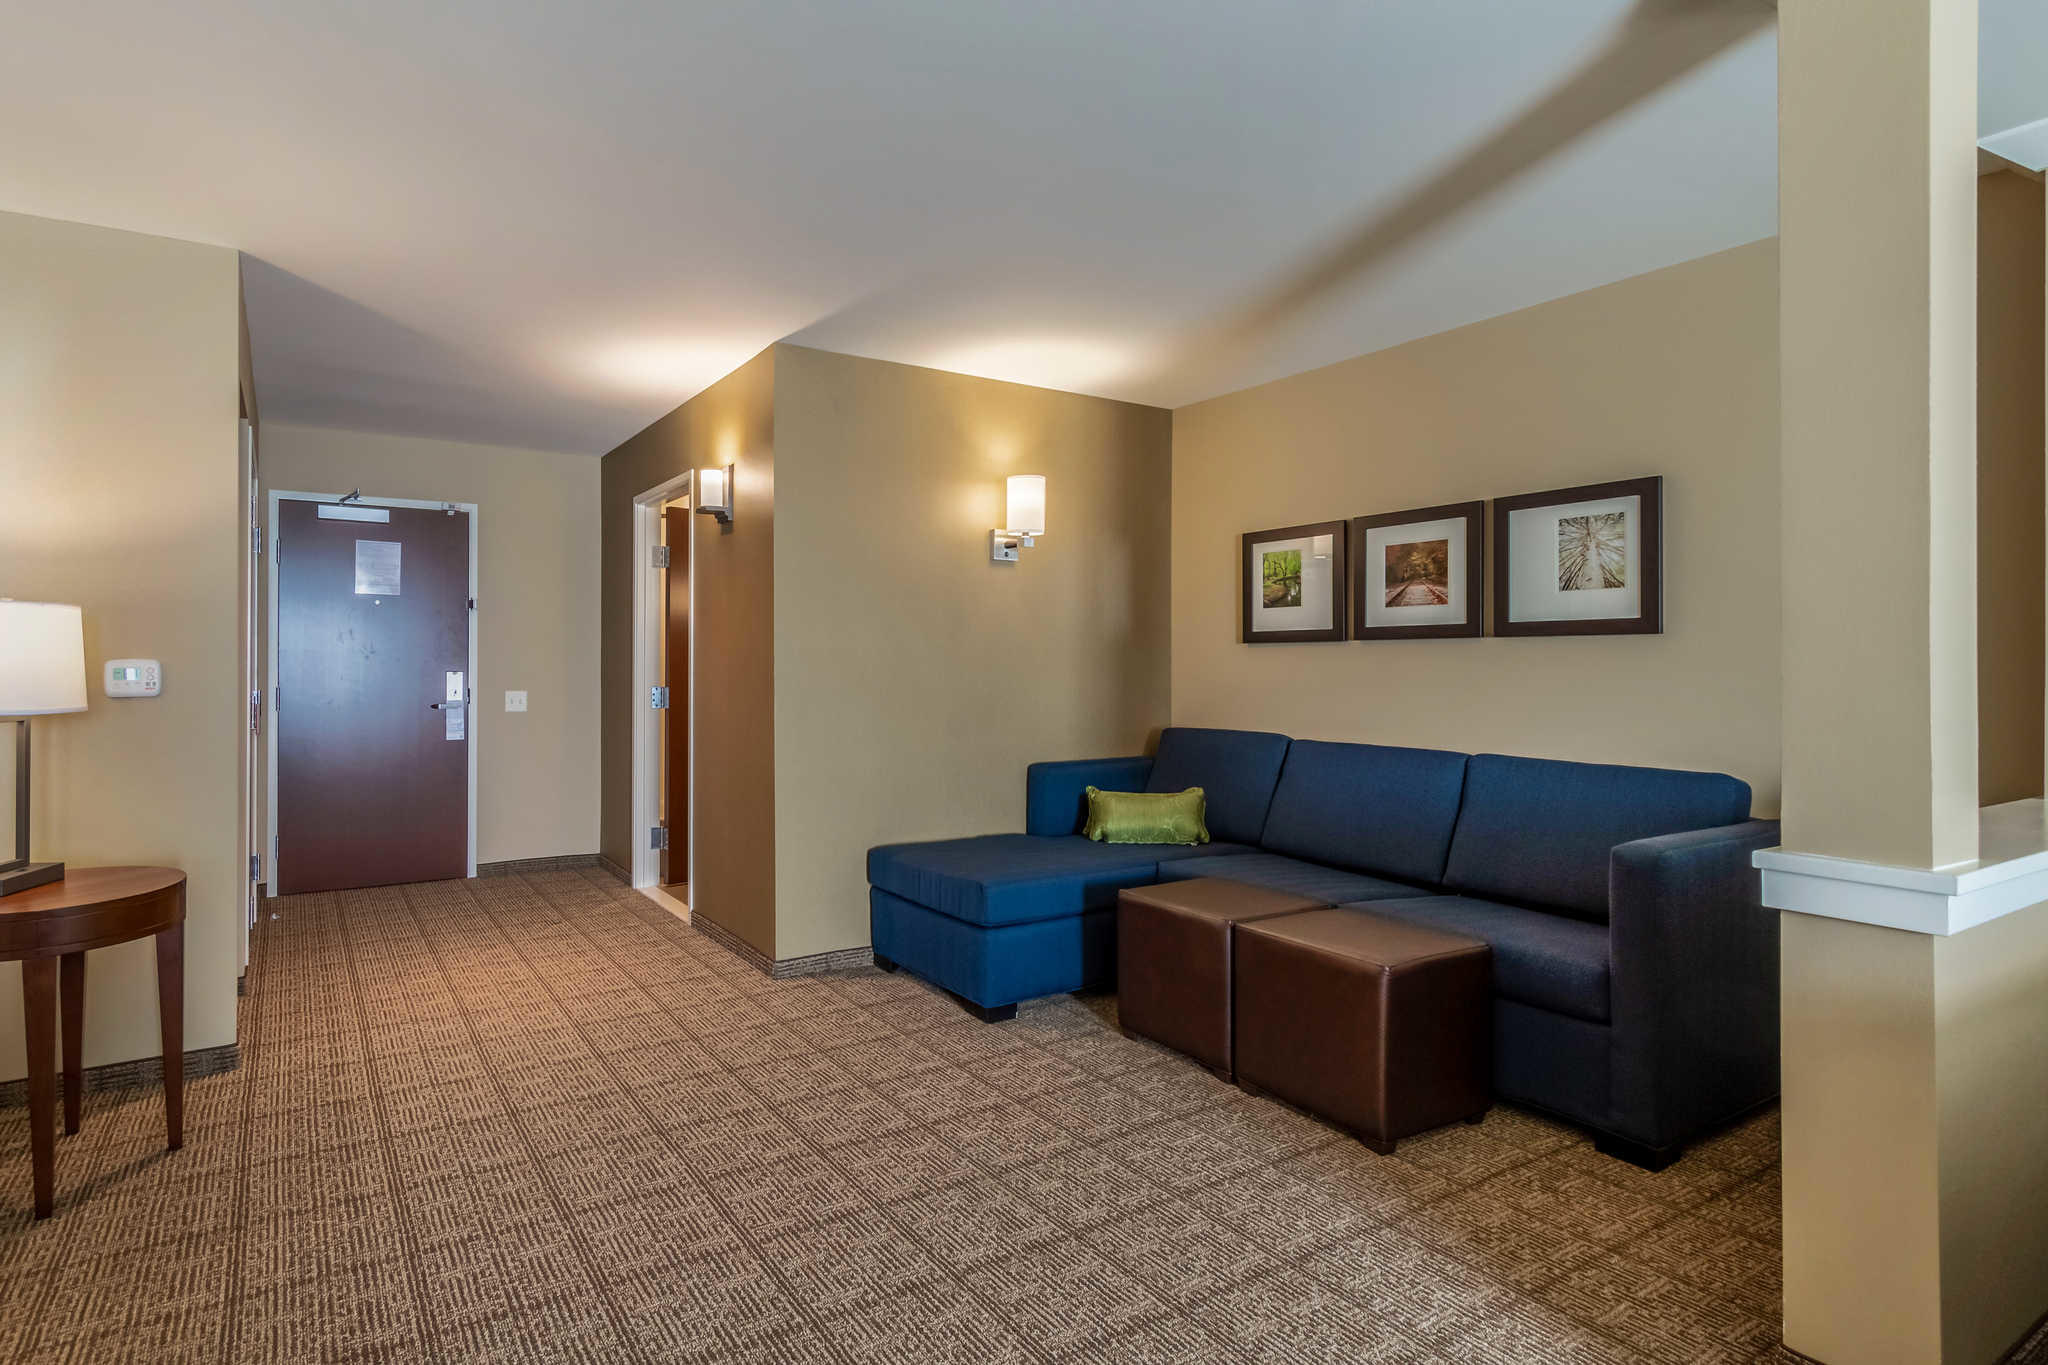 Comfort Inn & Suites - Harrisburg Airport - Hershey South image 17